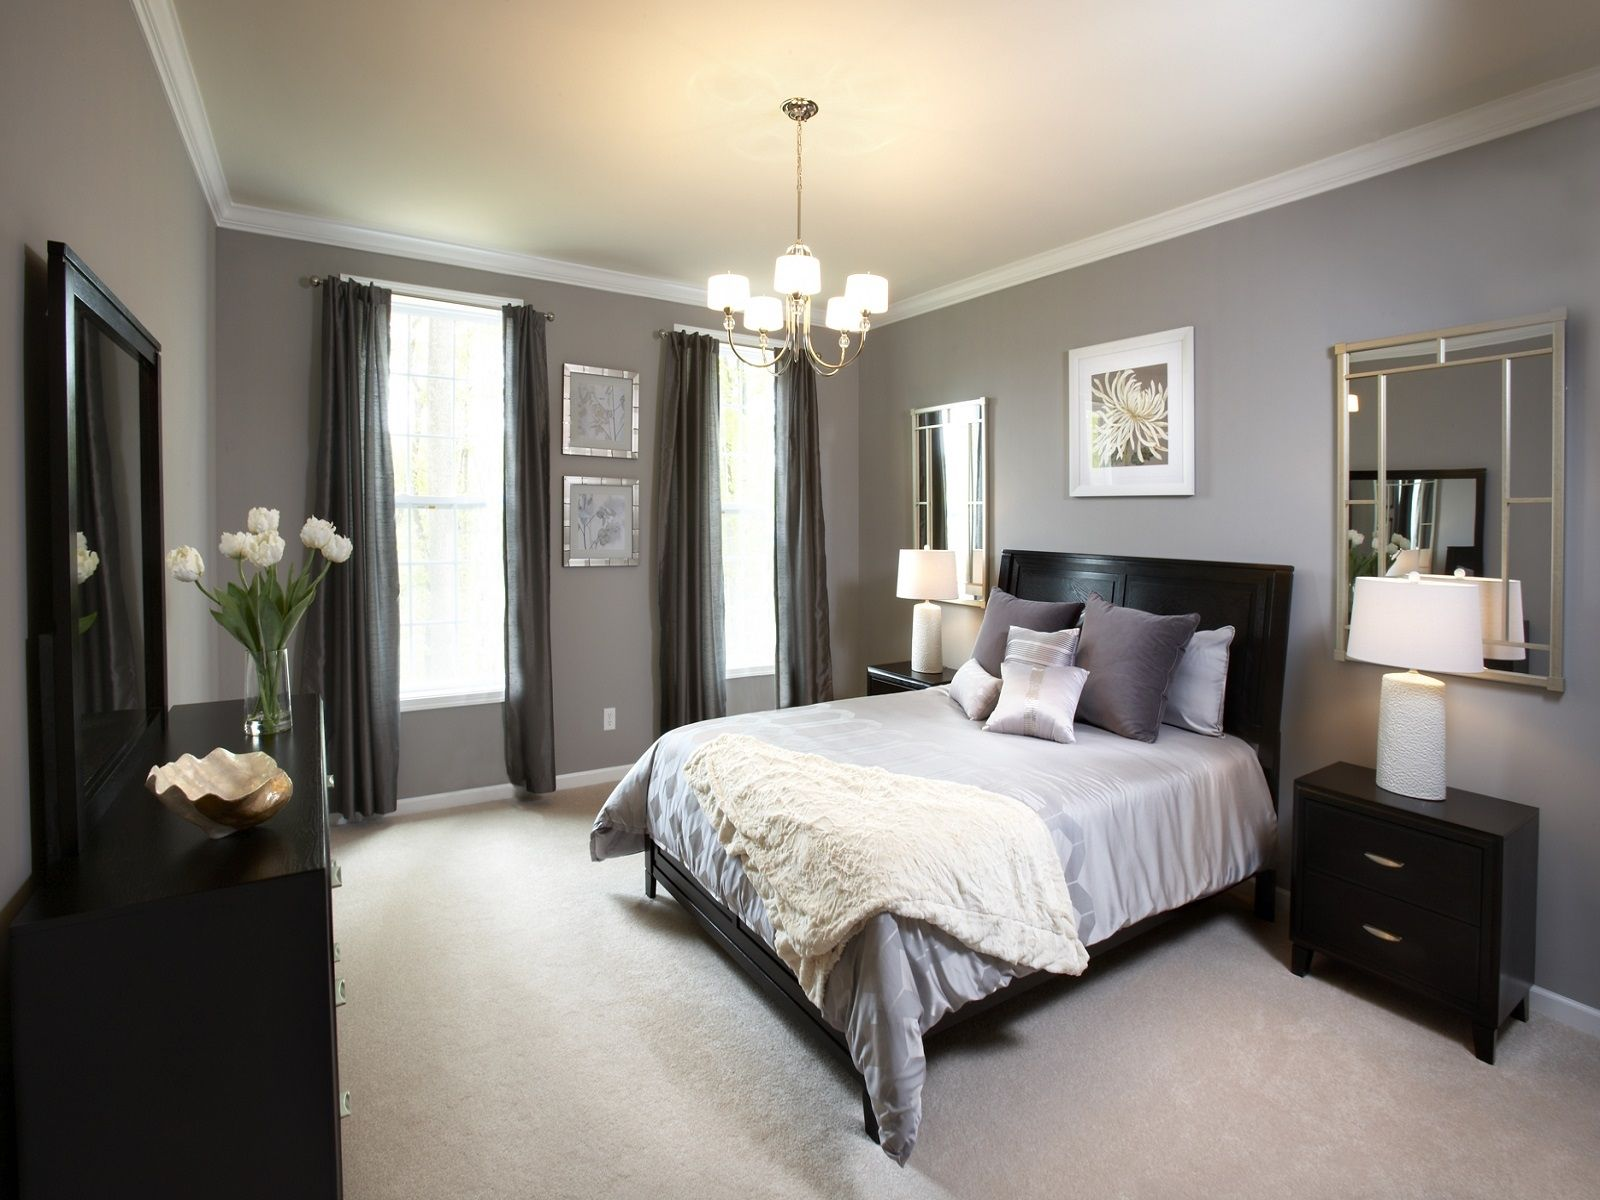 45 beautiful paint color ideas for master bedroom - Home Decor Bedrooms